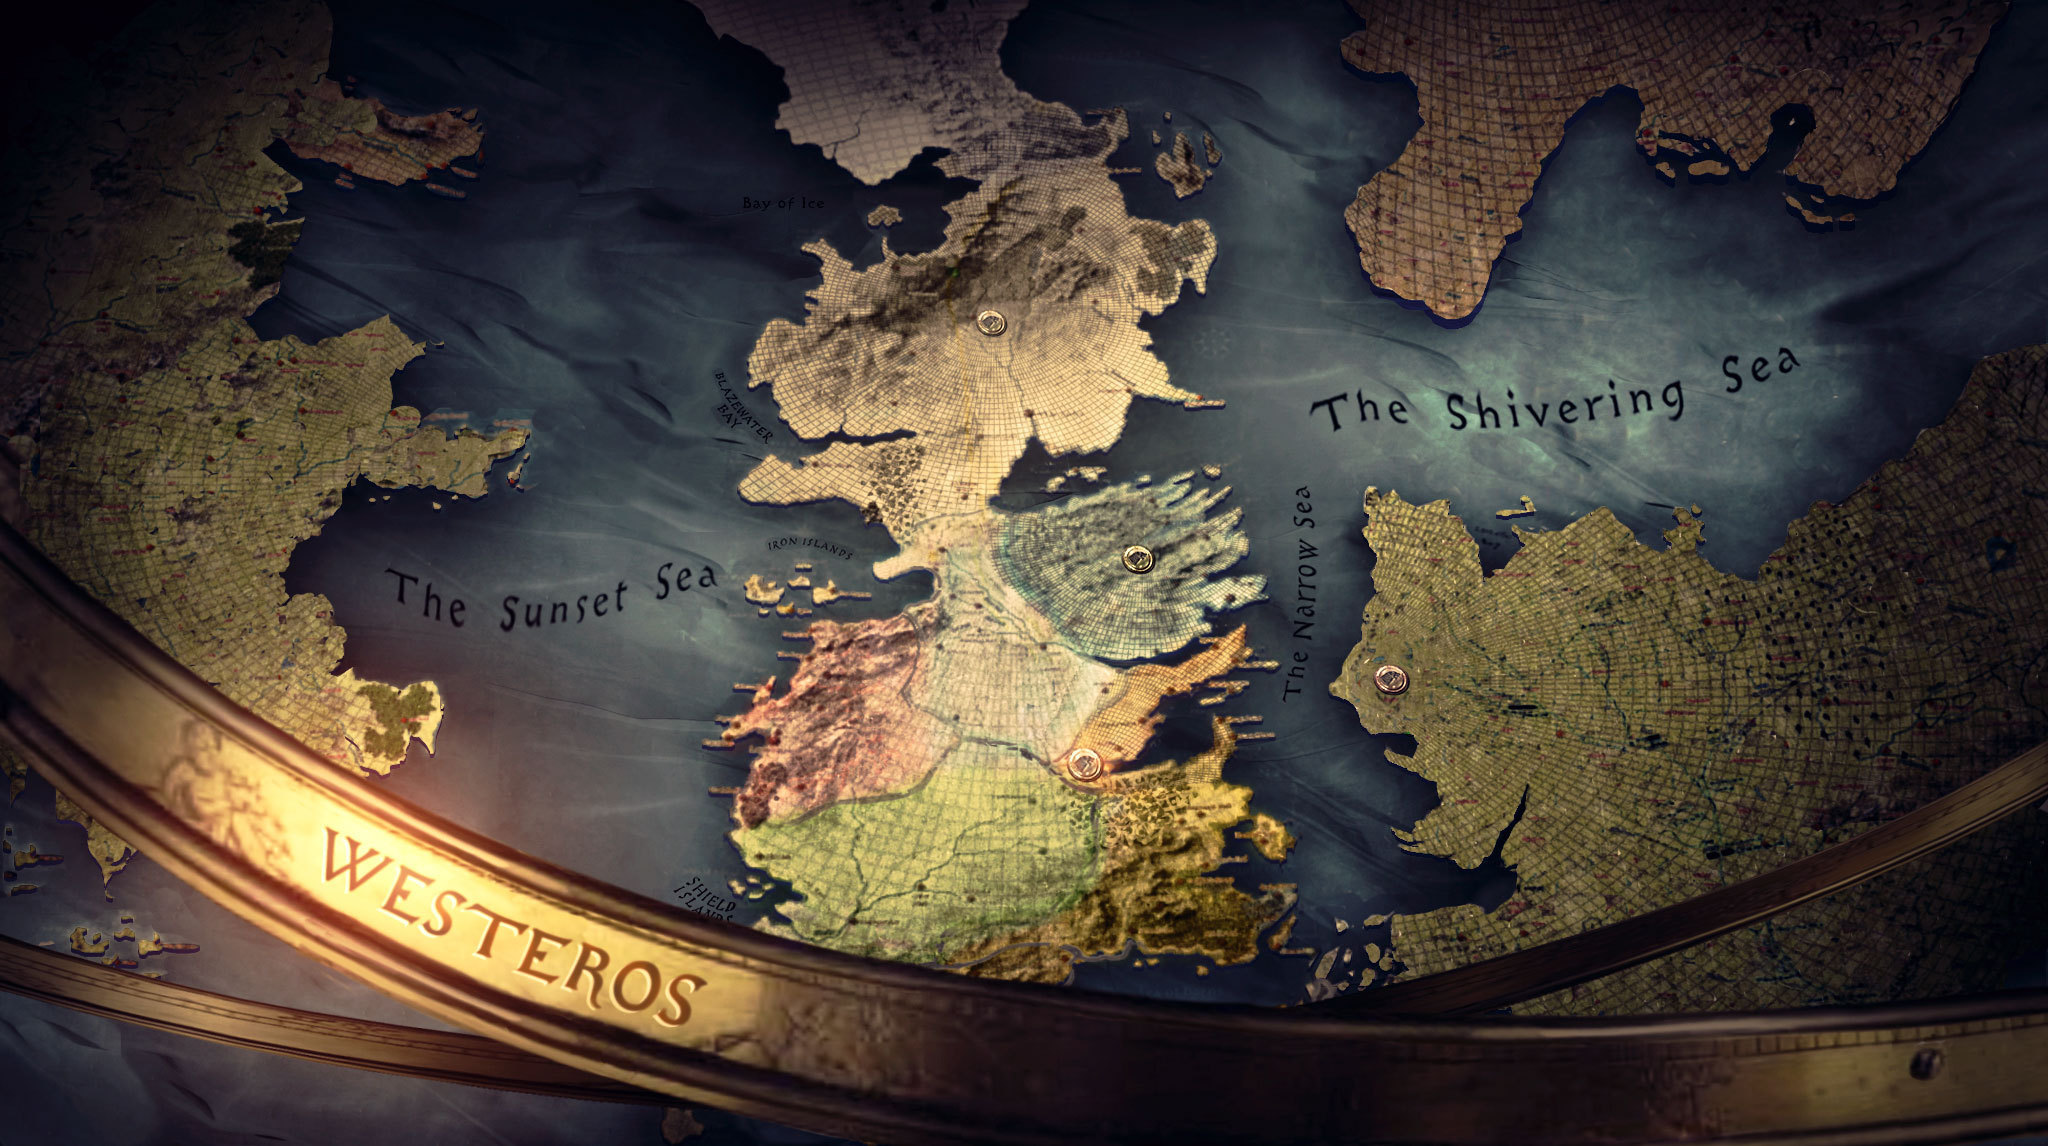 westeros-game-of-thrones-song-of-ice-and-fire-map-fantasy.jpg